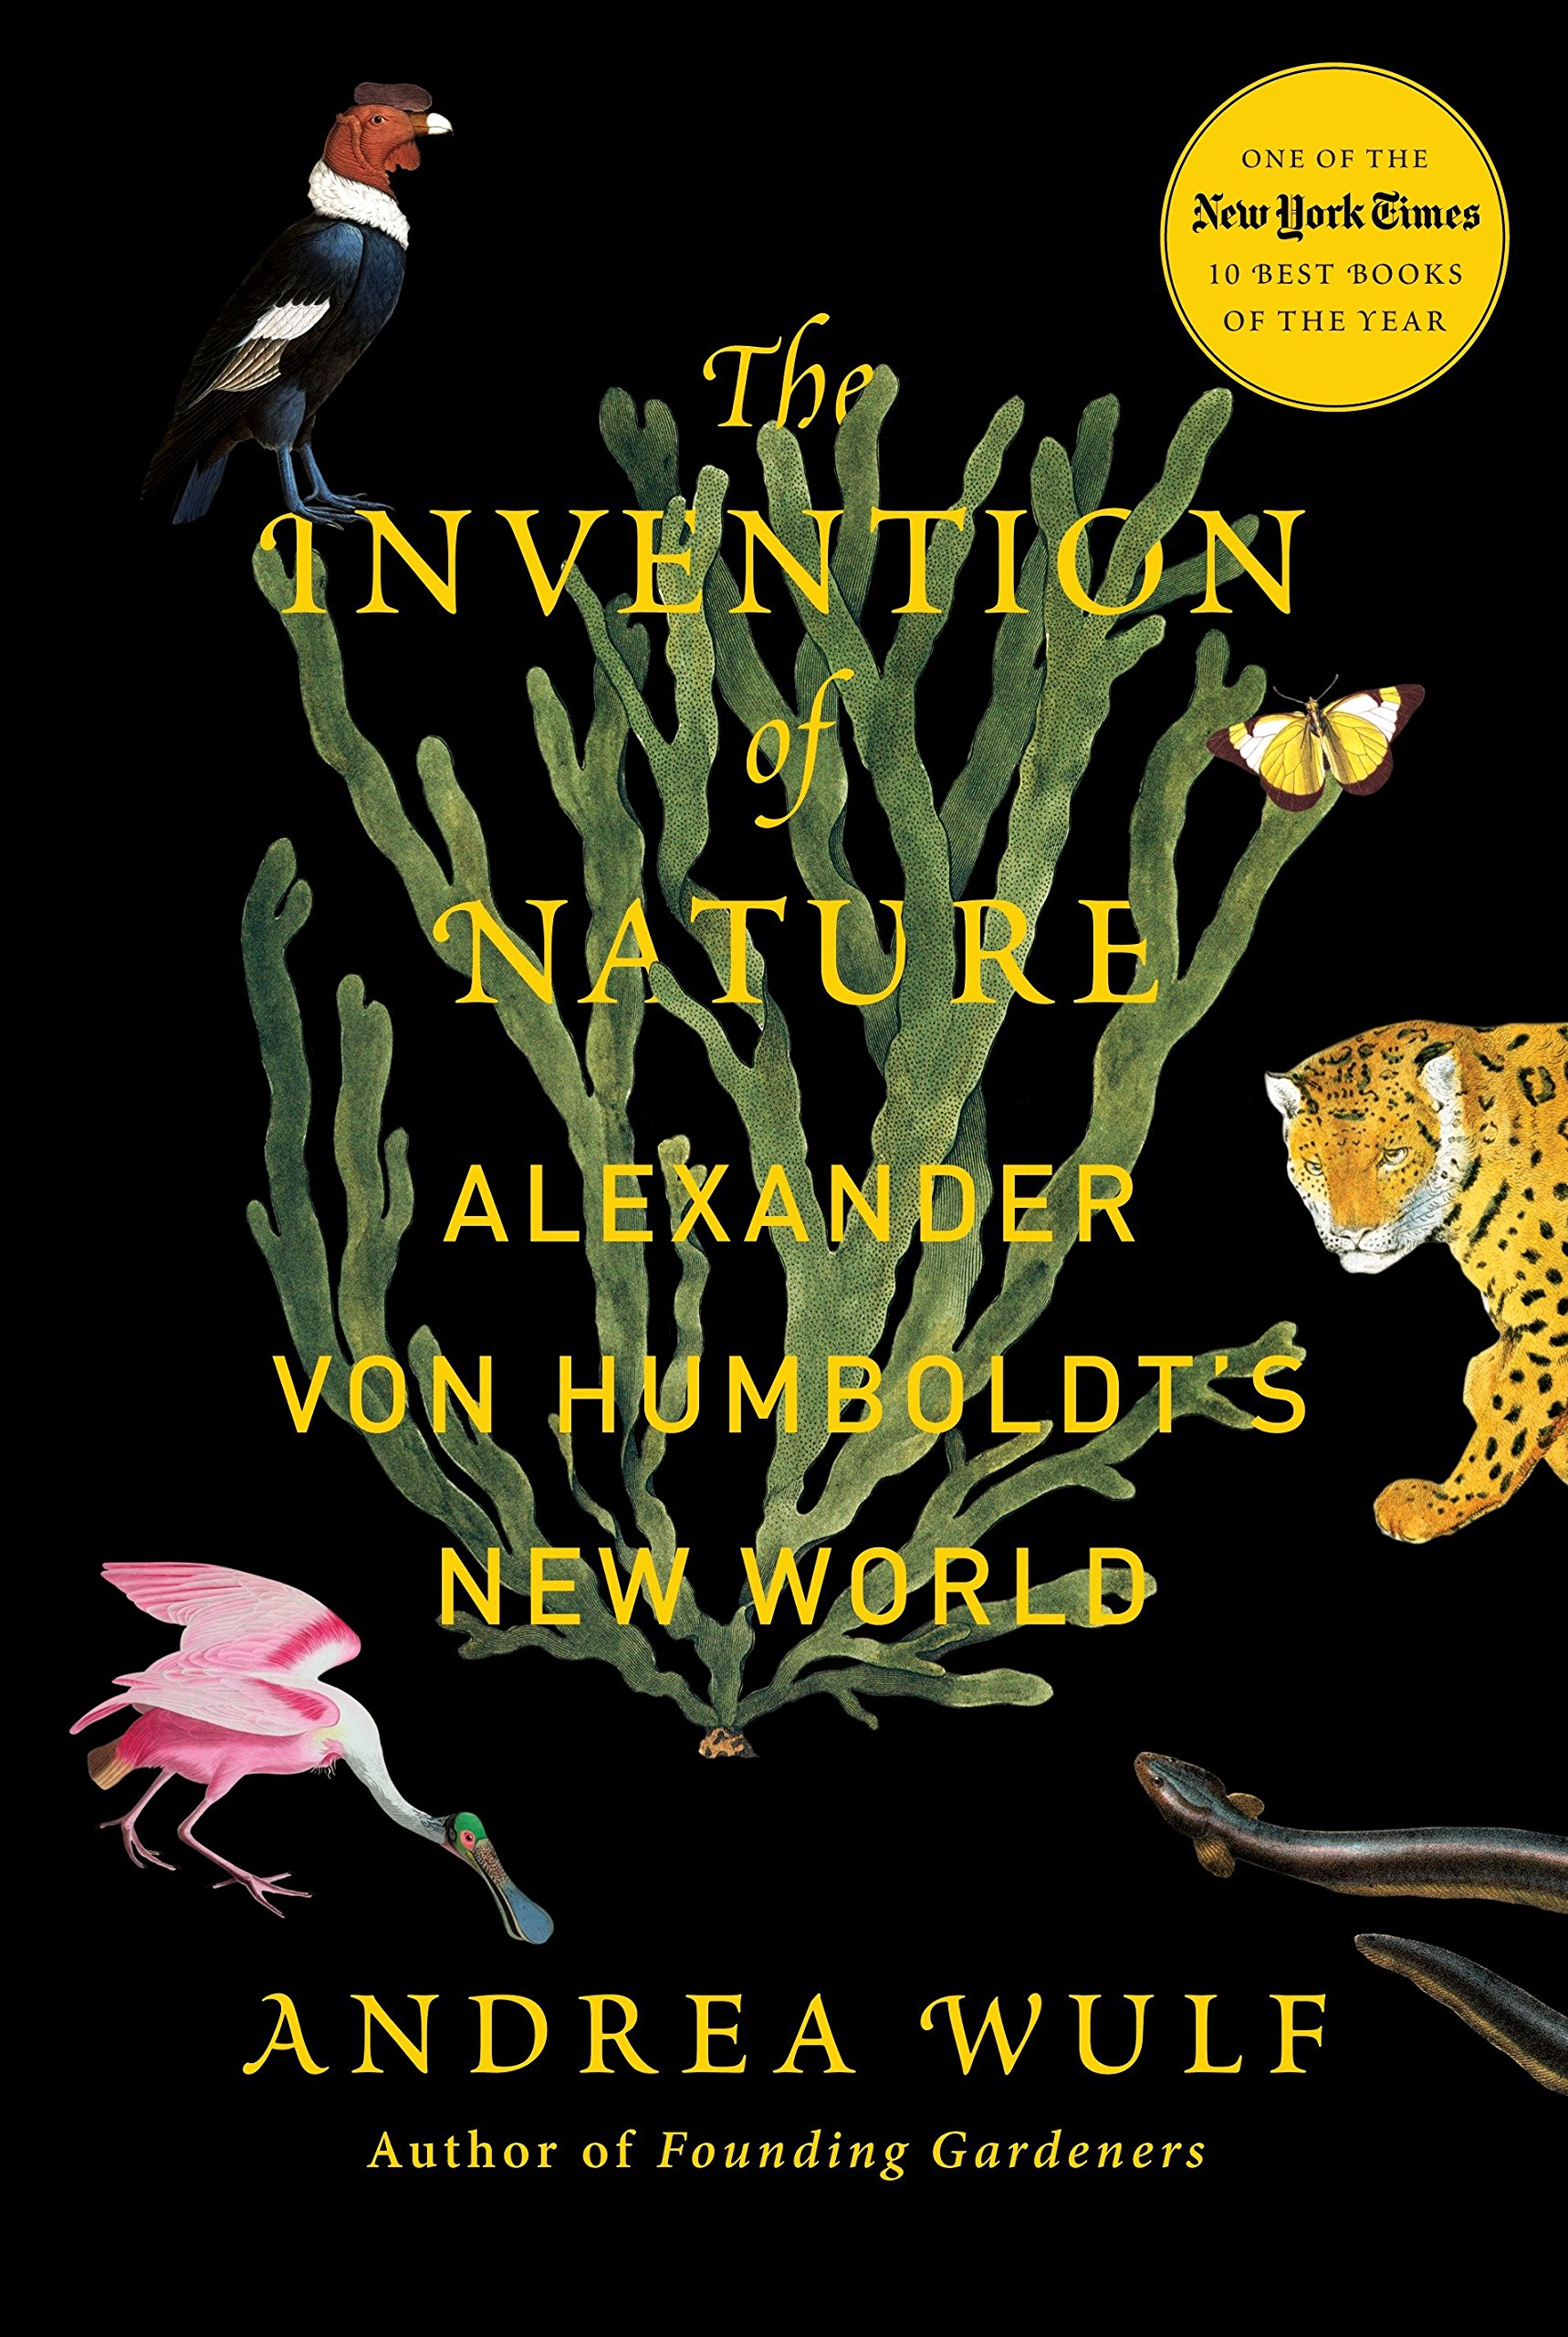 Image result for The Invention of Nature: Alexander von Humboldt's New World